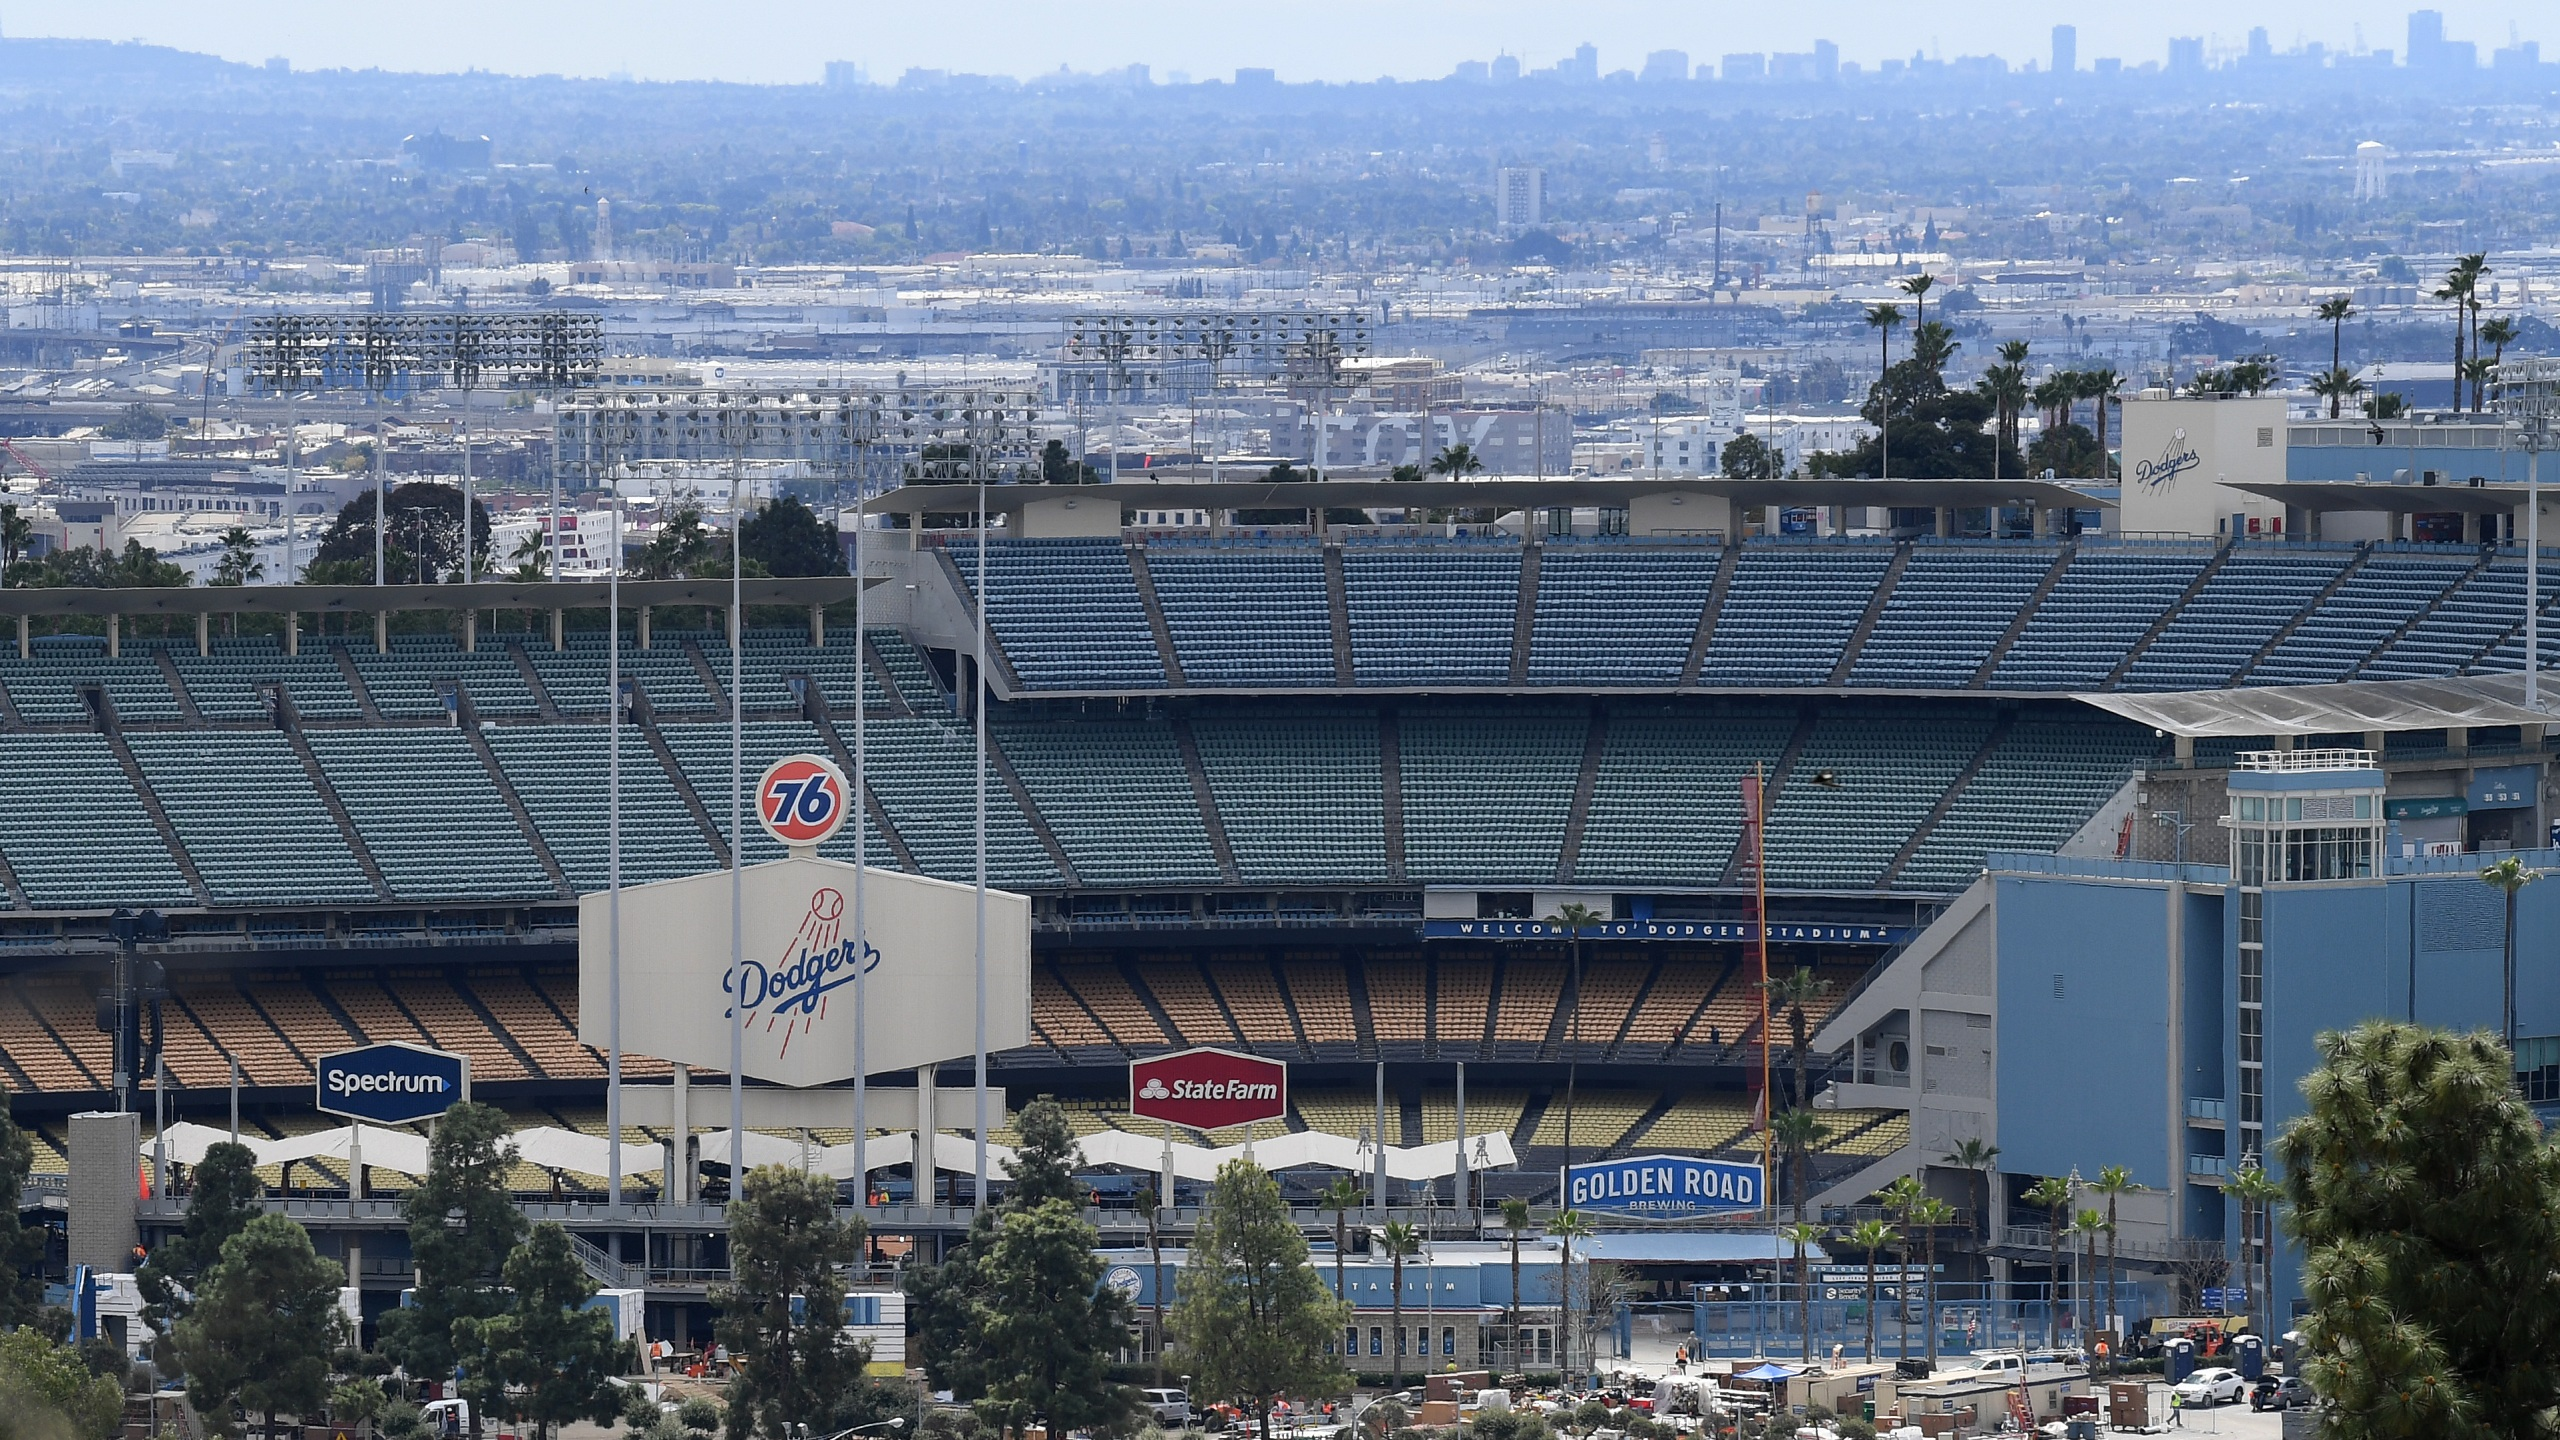 Dodger Stadium is seen on March 25, 2020. (Harry How/Getty Images)